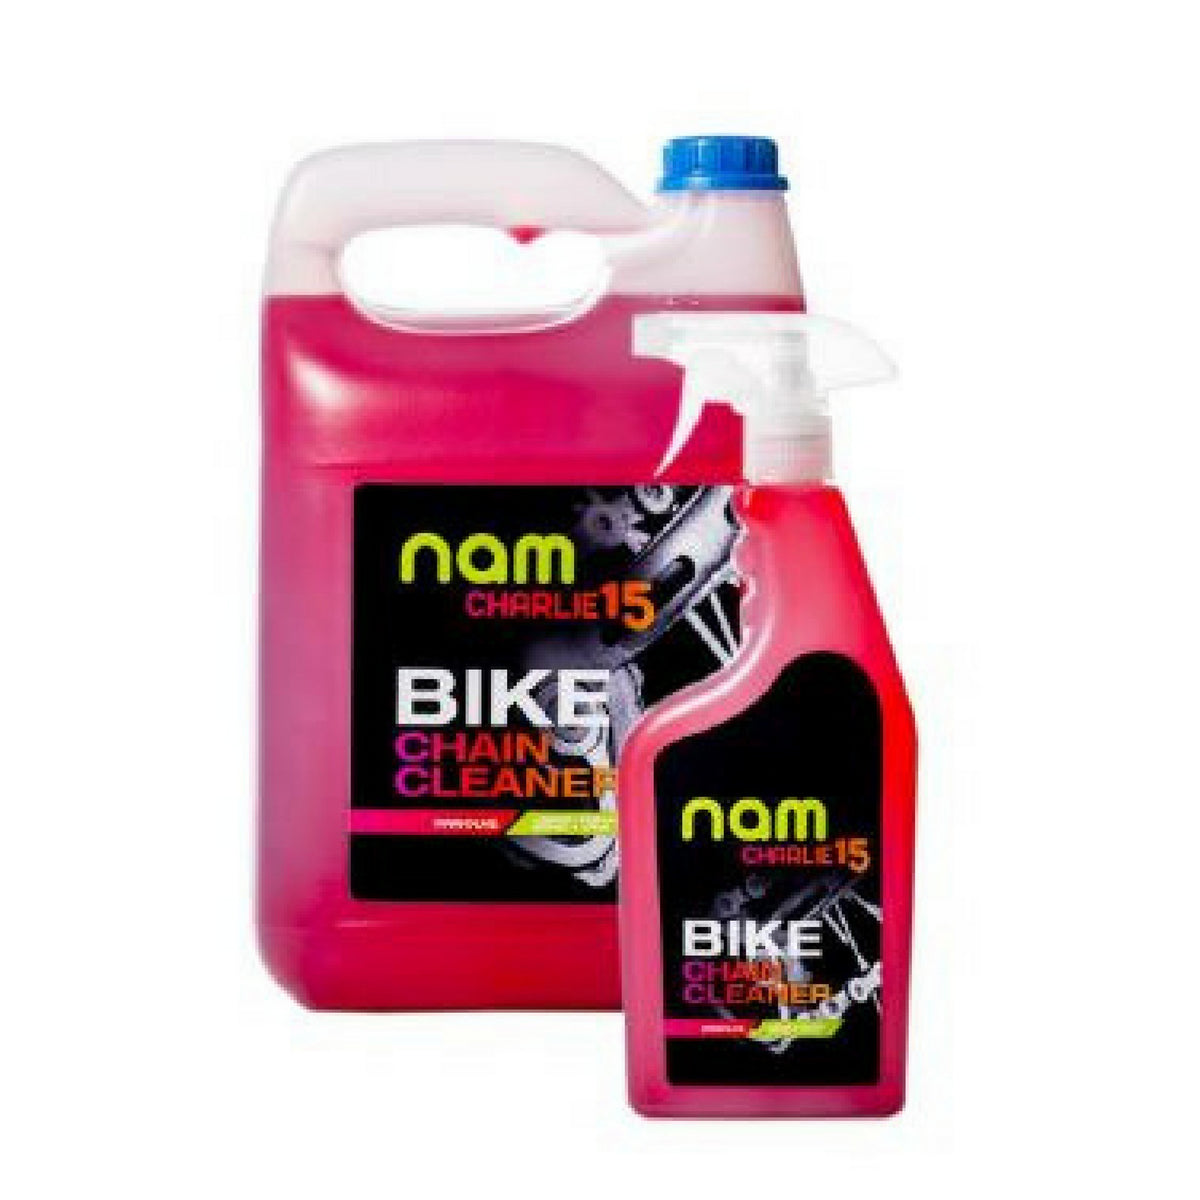 Namgear Charlie15 Bike Chain Cleaner